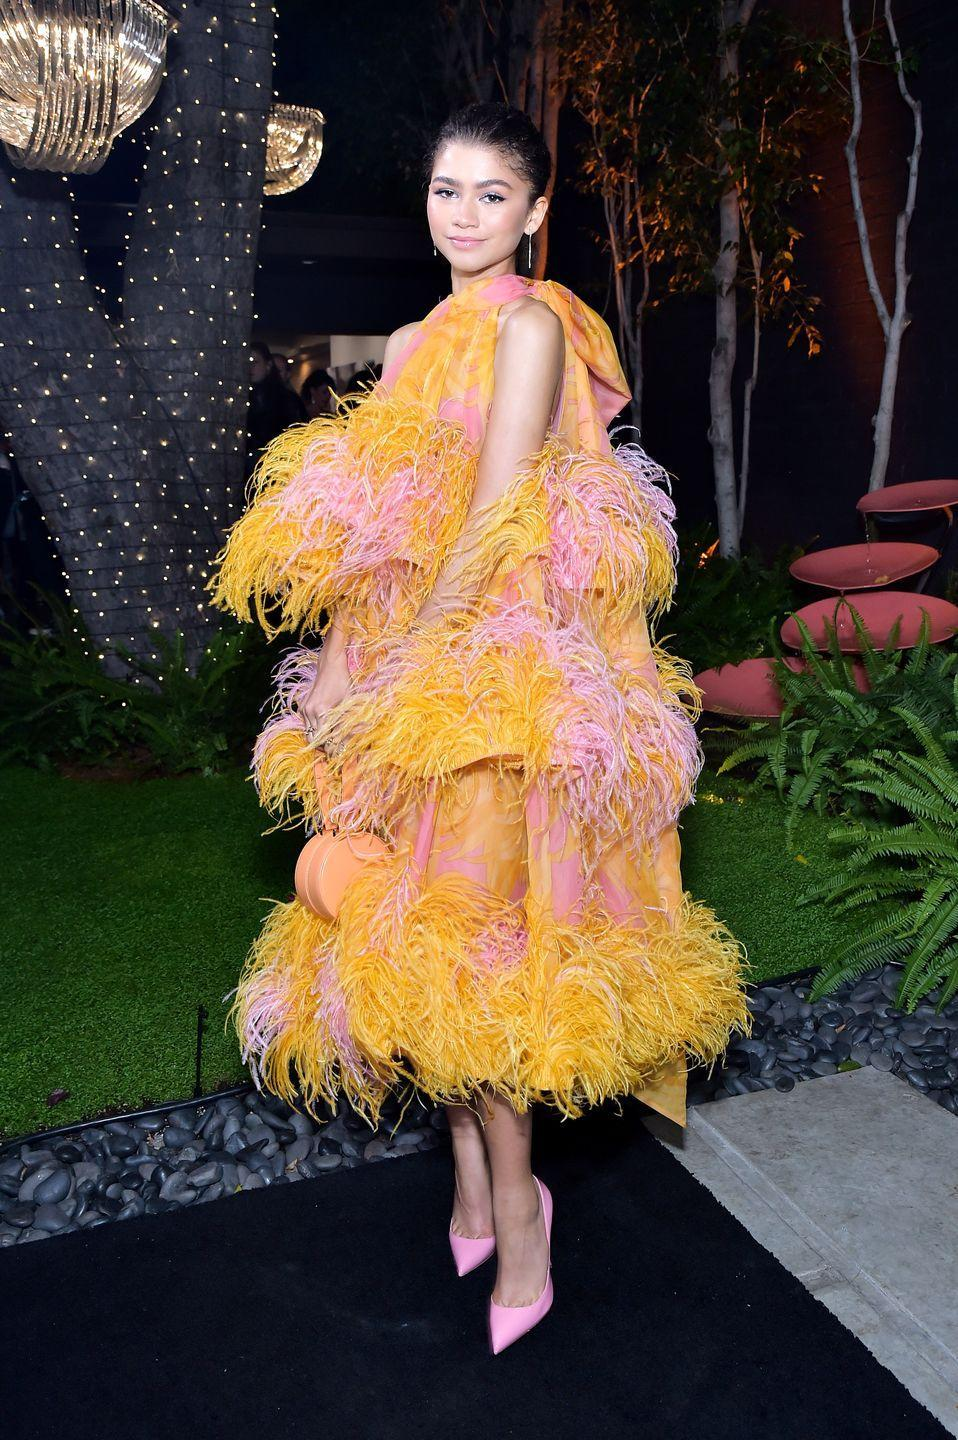 <p>At the Âme Jewelry brand launch party, she wore this eye-popping pink-and-orange feathered dress from Marc Jacobs' spring 2019 collection.</p>